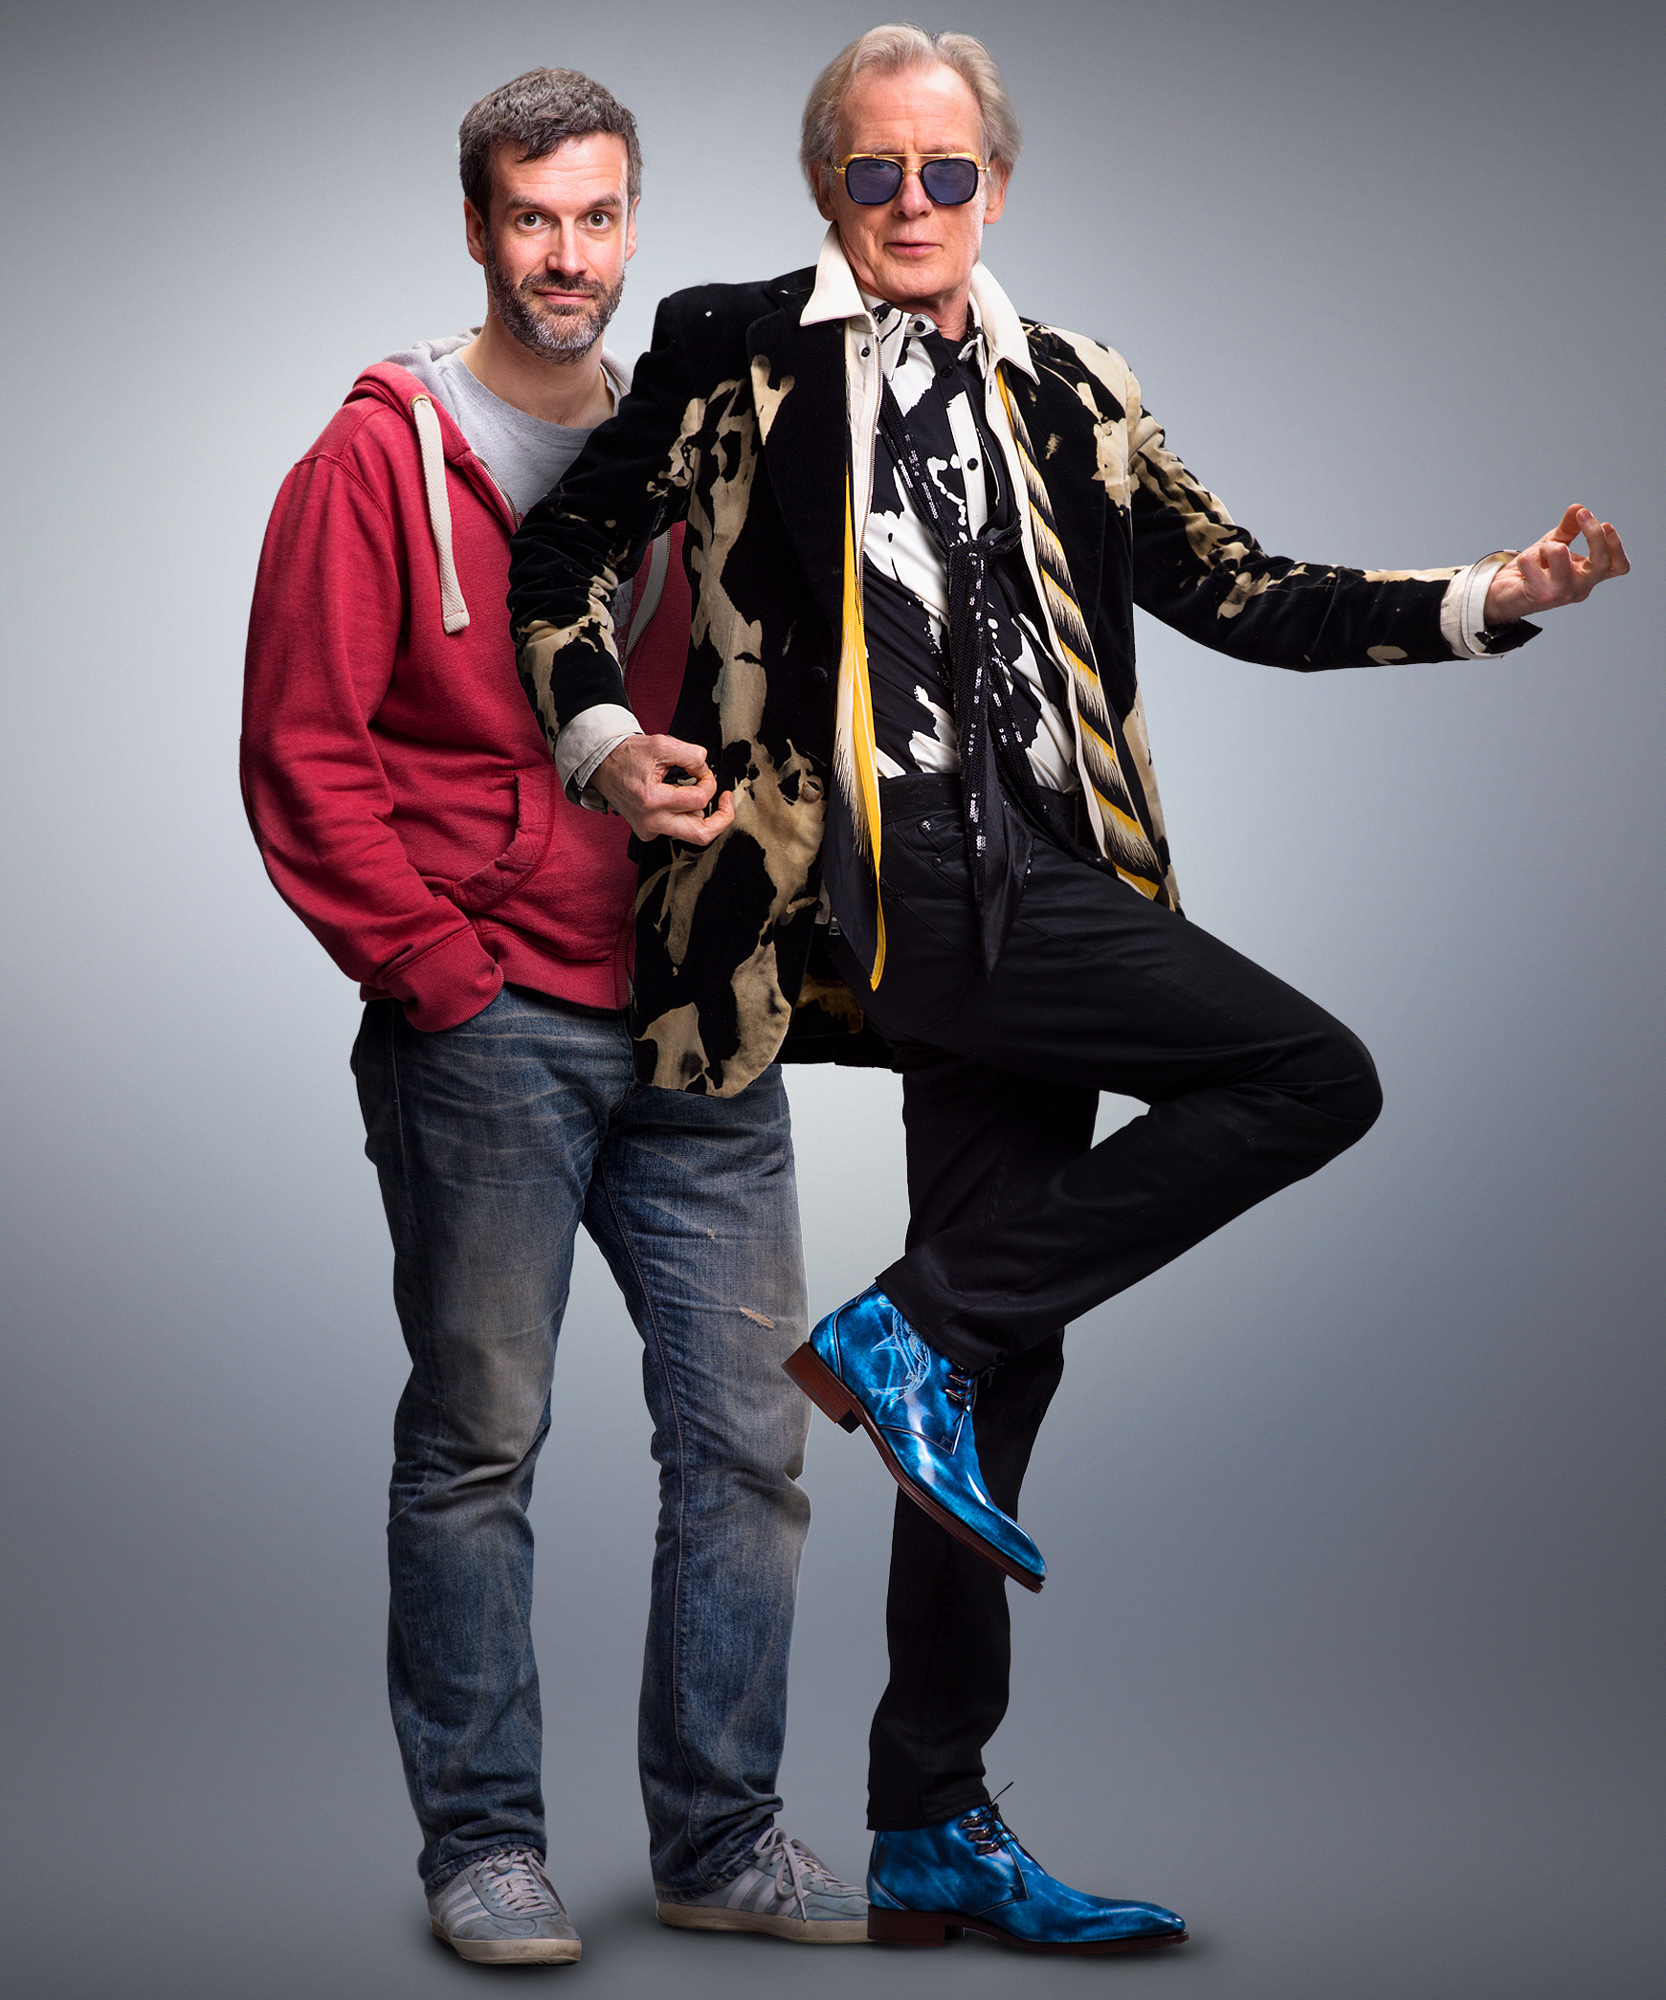 Marcus Brigstocke and Bill Nighy